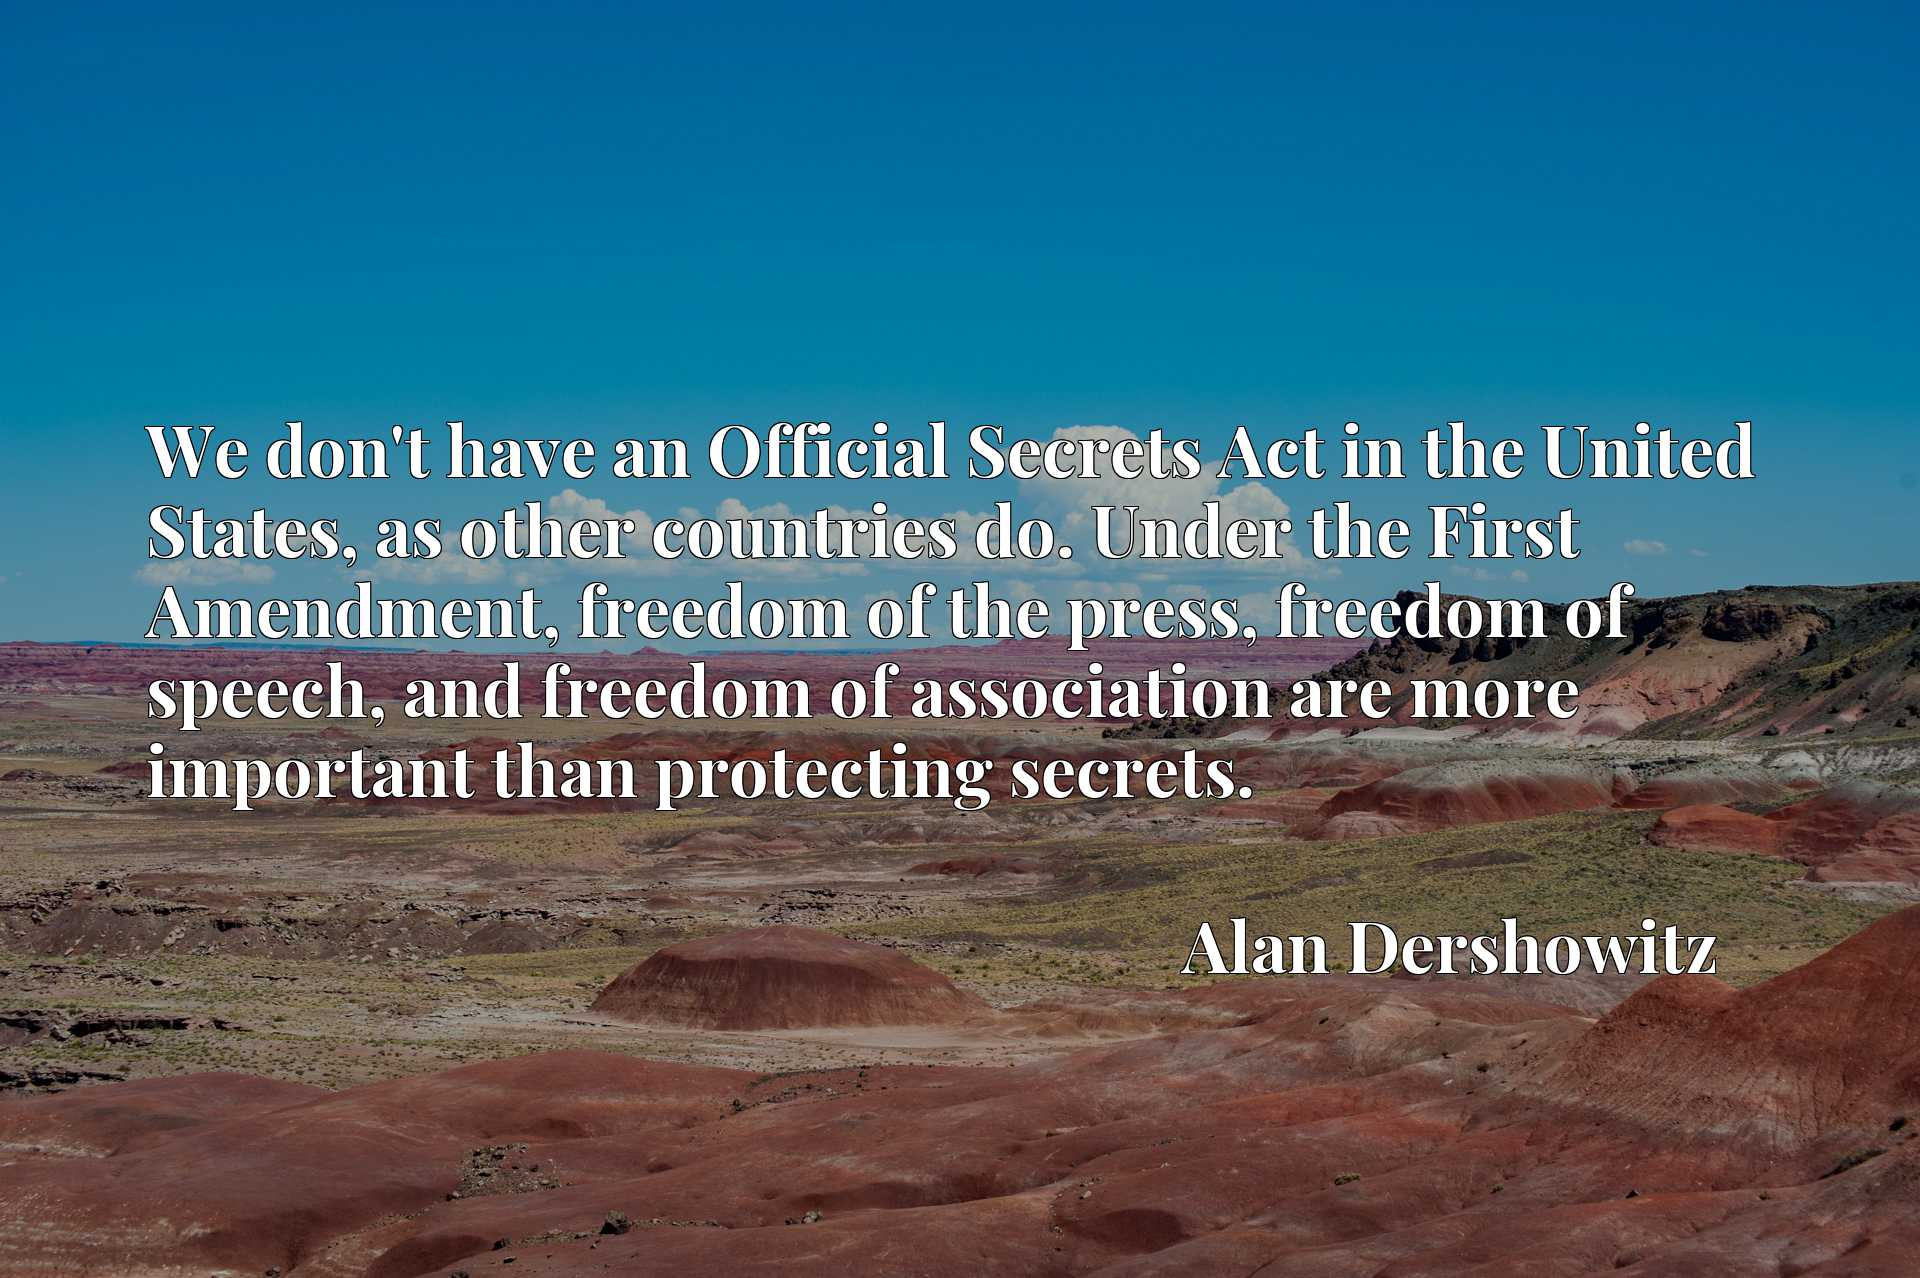 We don't have an Official Secrets Act in the United States, as other countries do. Under the First Amendment, freedom of the press, freedom of speech, and freedom of association are more important than protecting secrets.